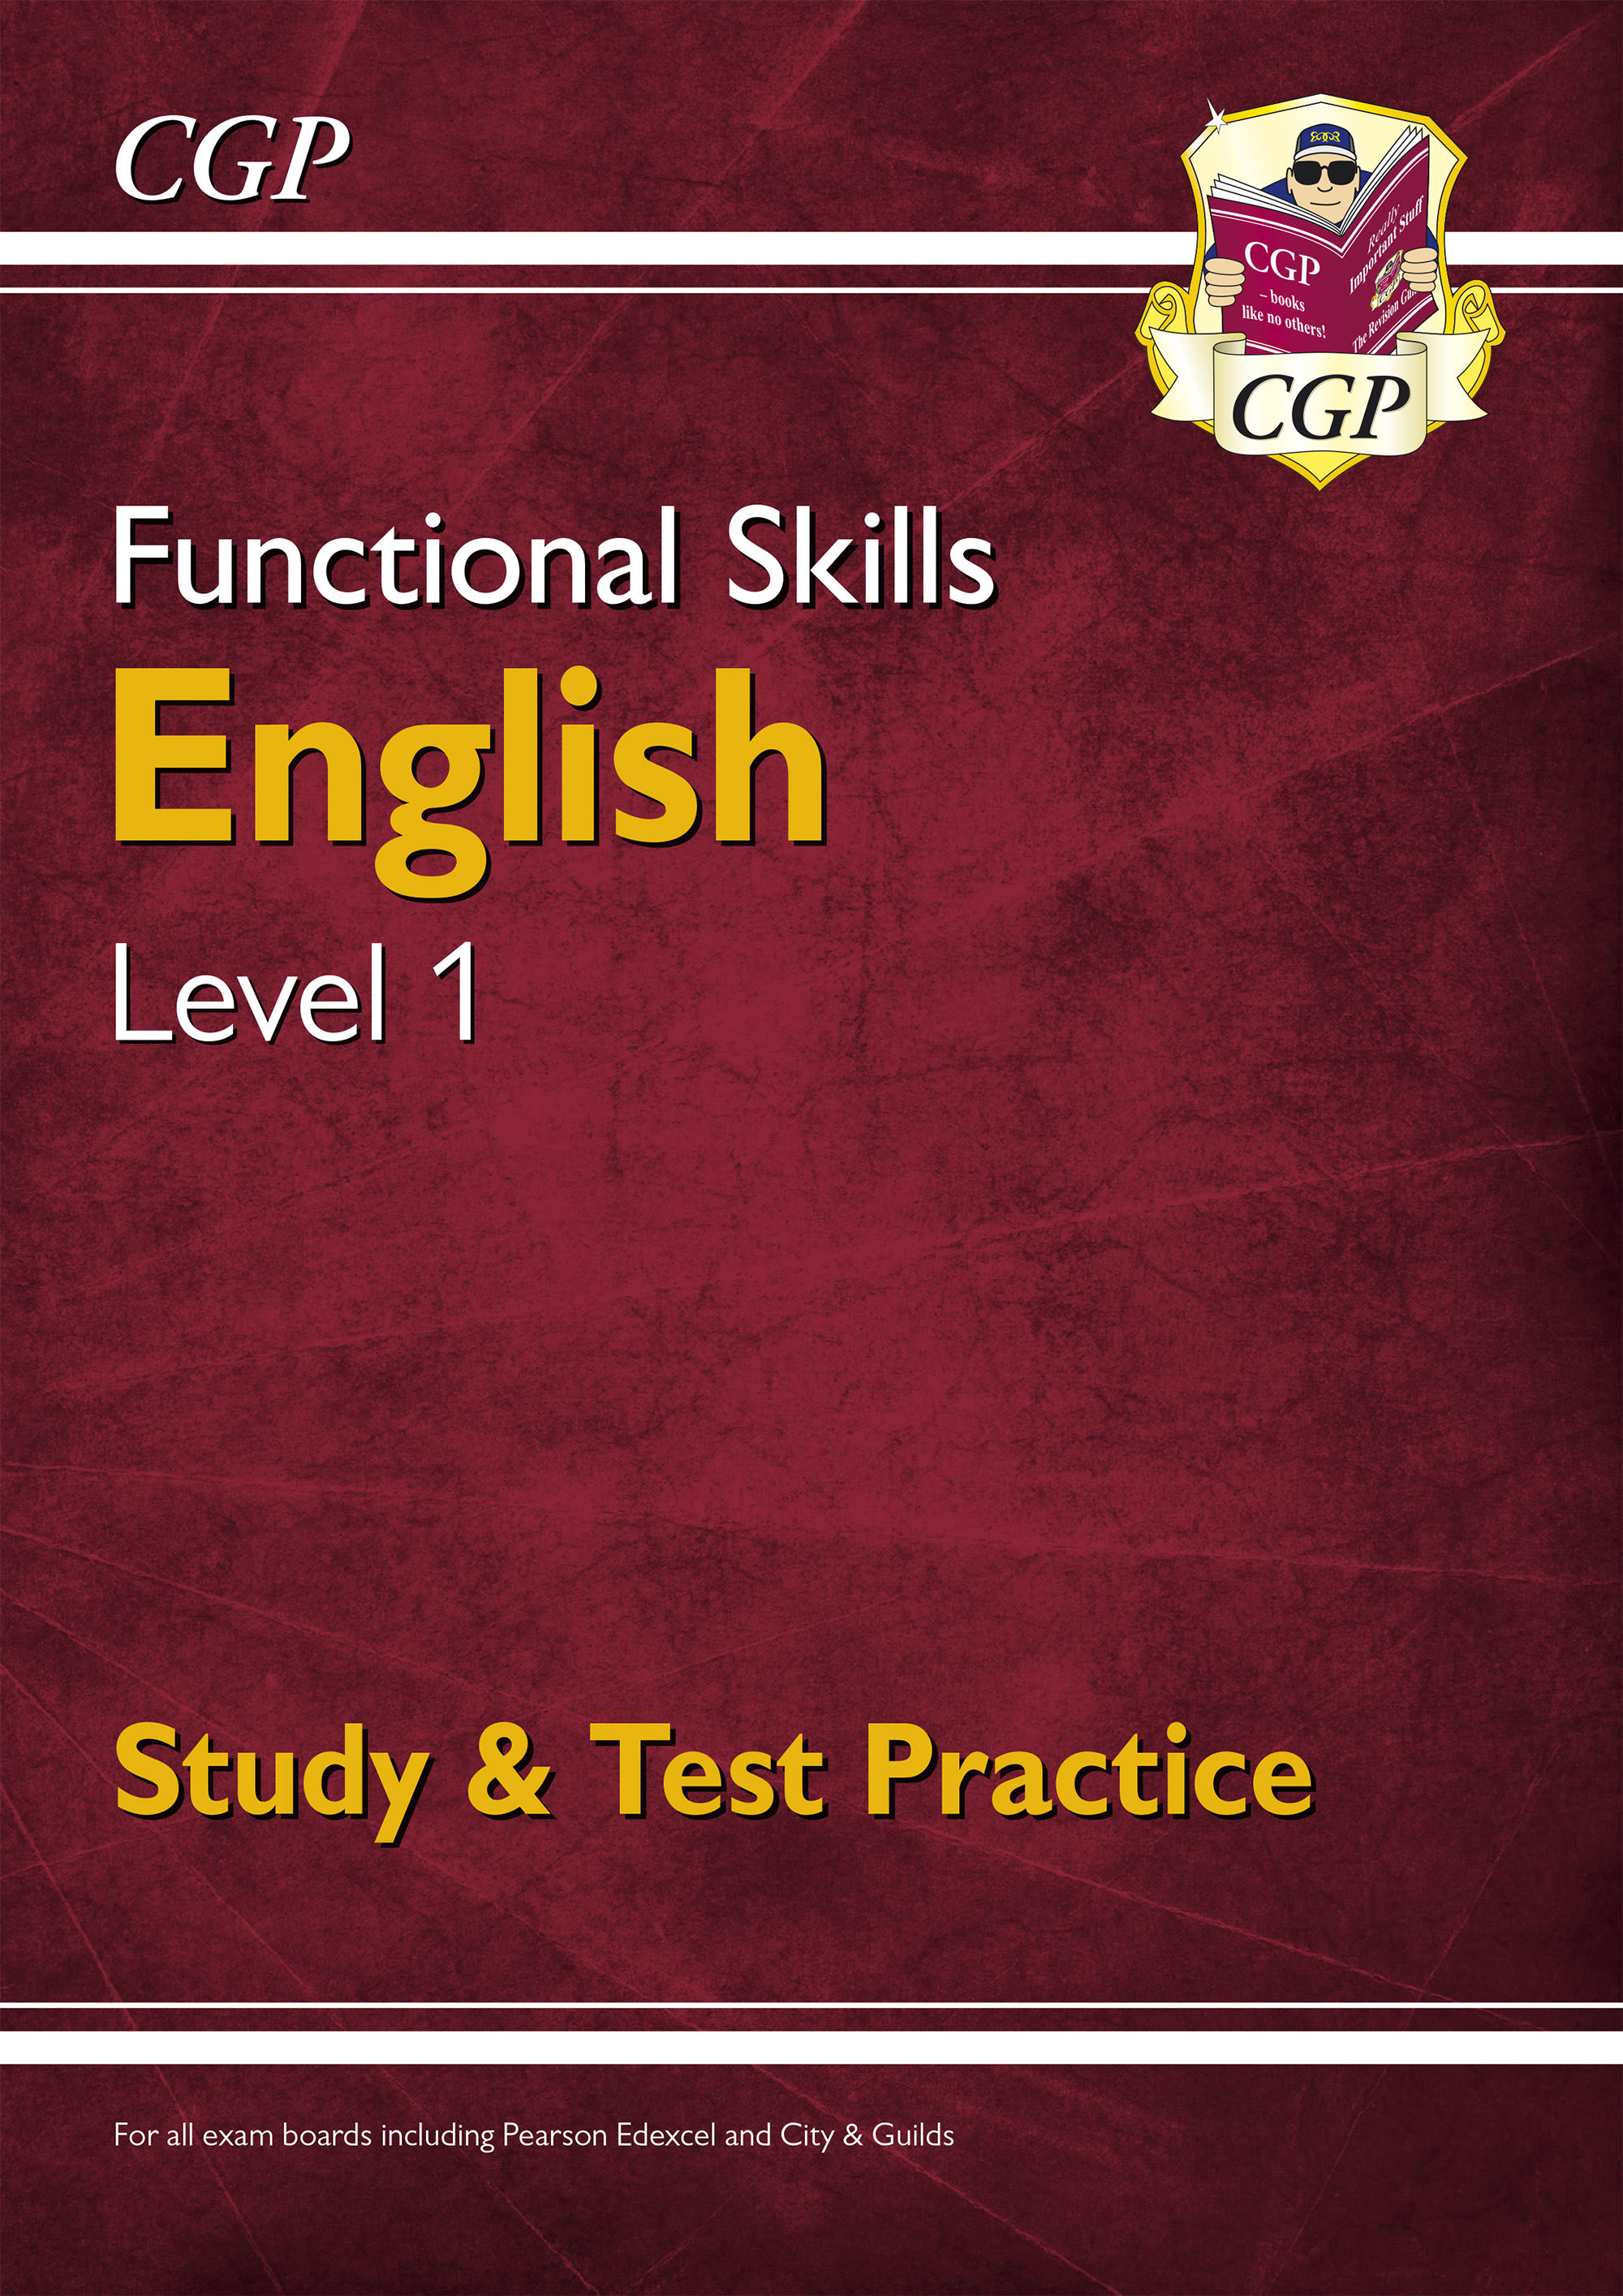 E1SRA3DK - New Functional Skills English Level 1 - Study & Test Practice (for 2019 & beyond)